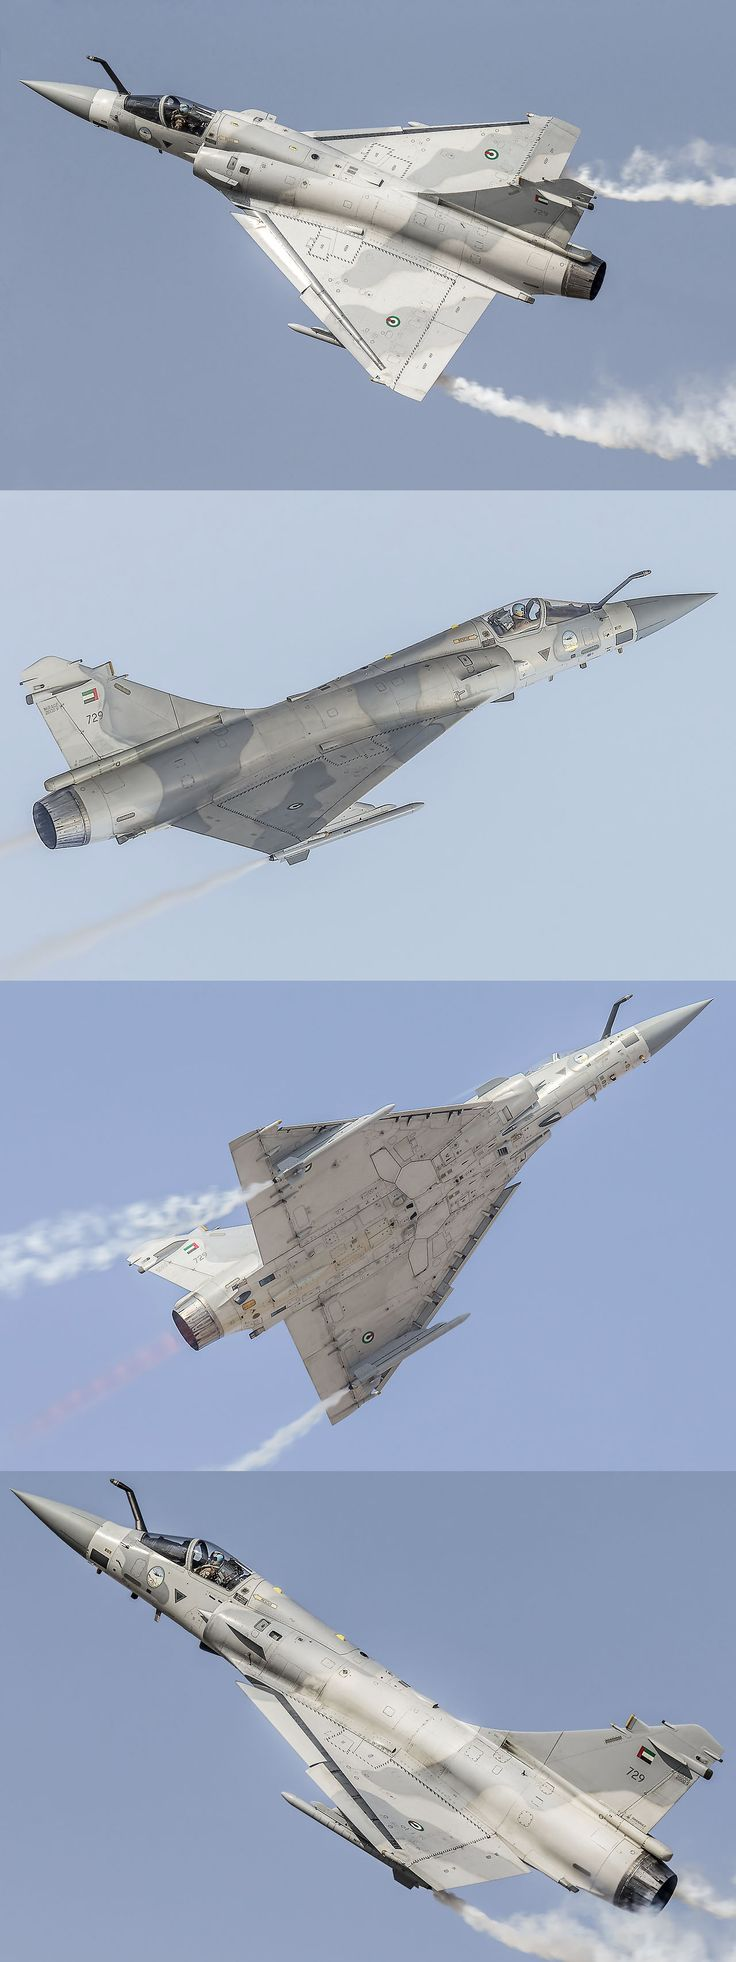 UAE Air Force Dassault Mirage 2000C